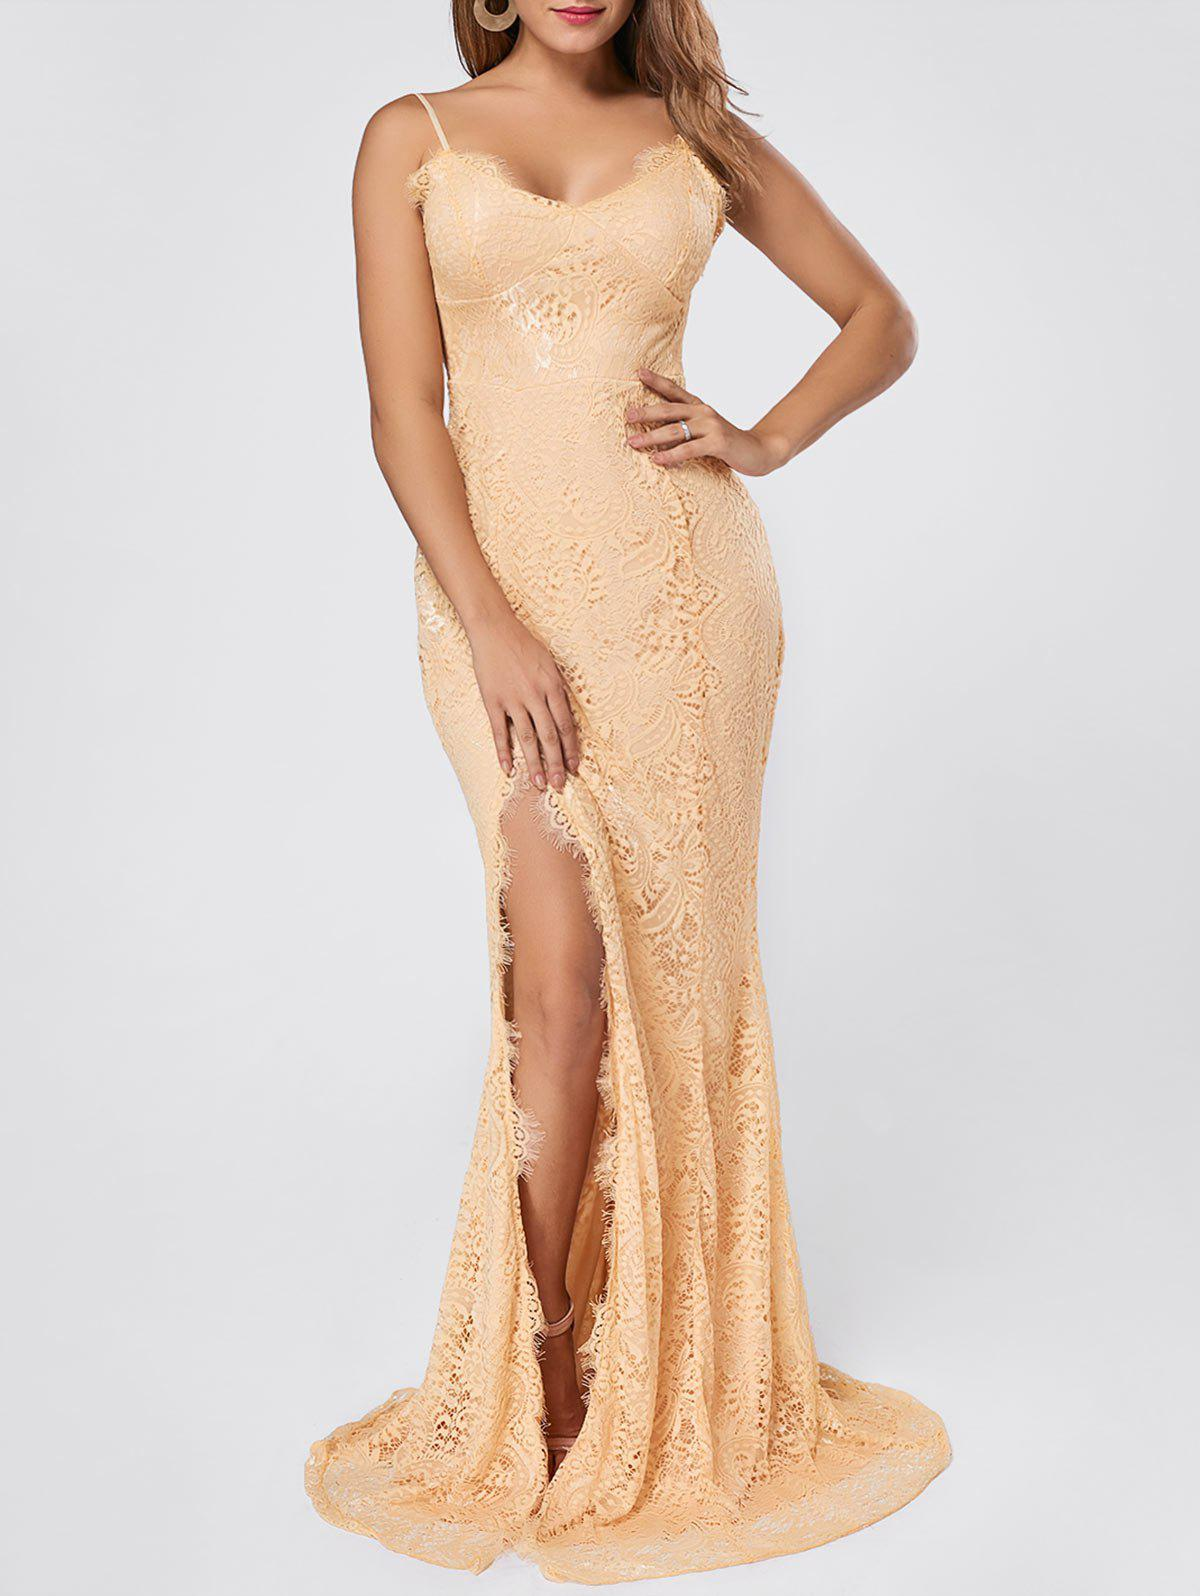 Slit Lace Maxi Slip Dress - APRICOT M